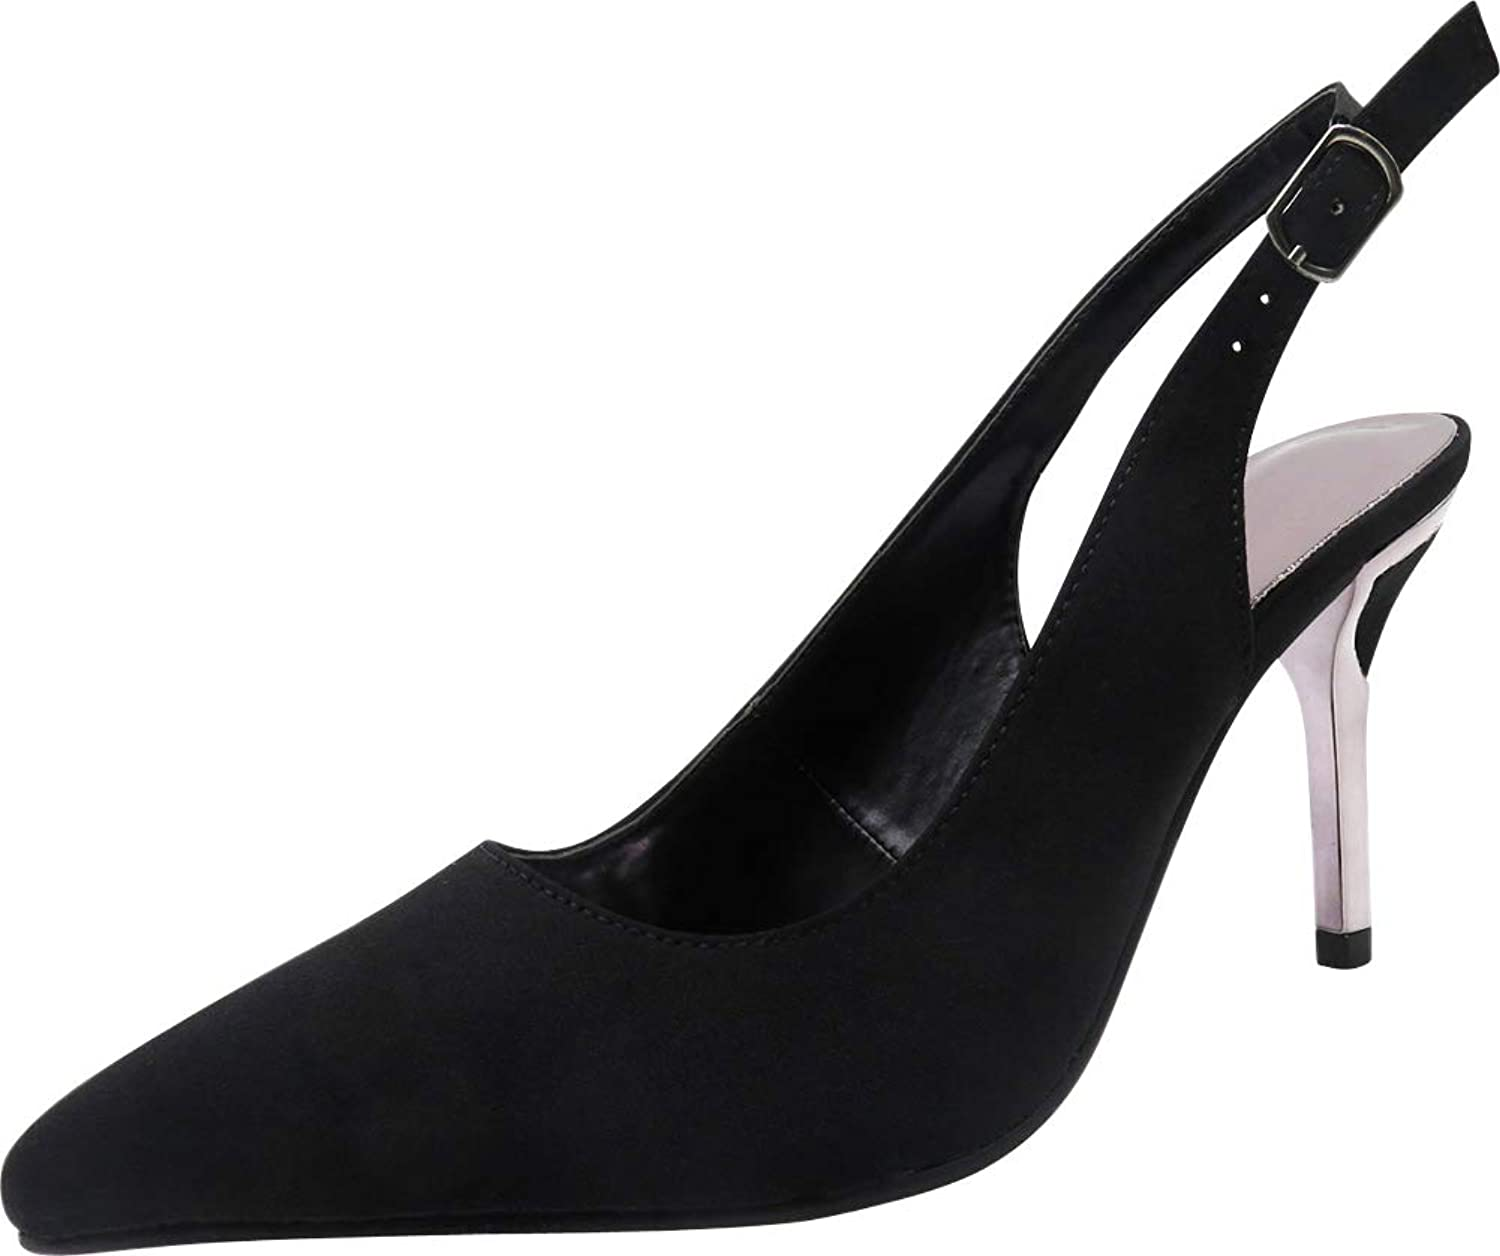 Cambridge Select Women's Pointed Toe Slingback Stiletto High Heel Pump